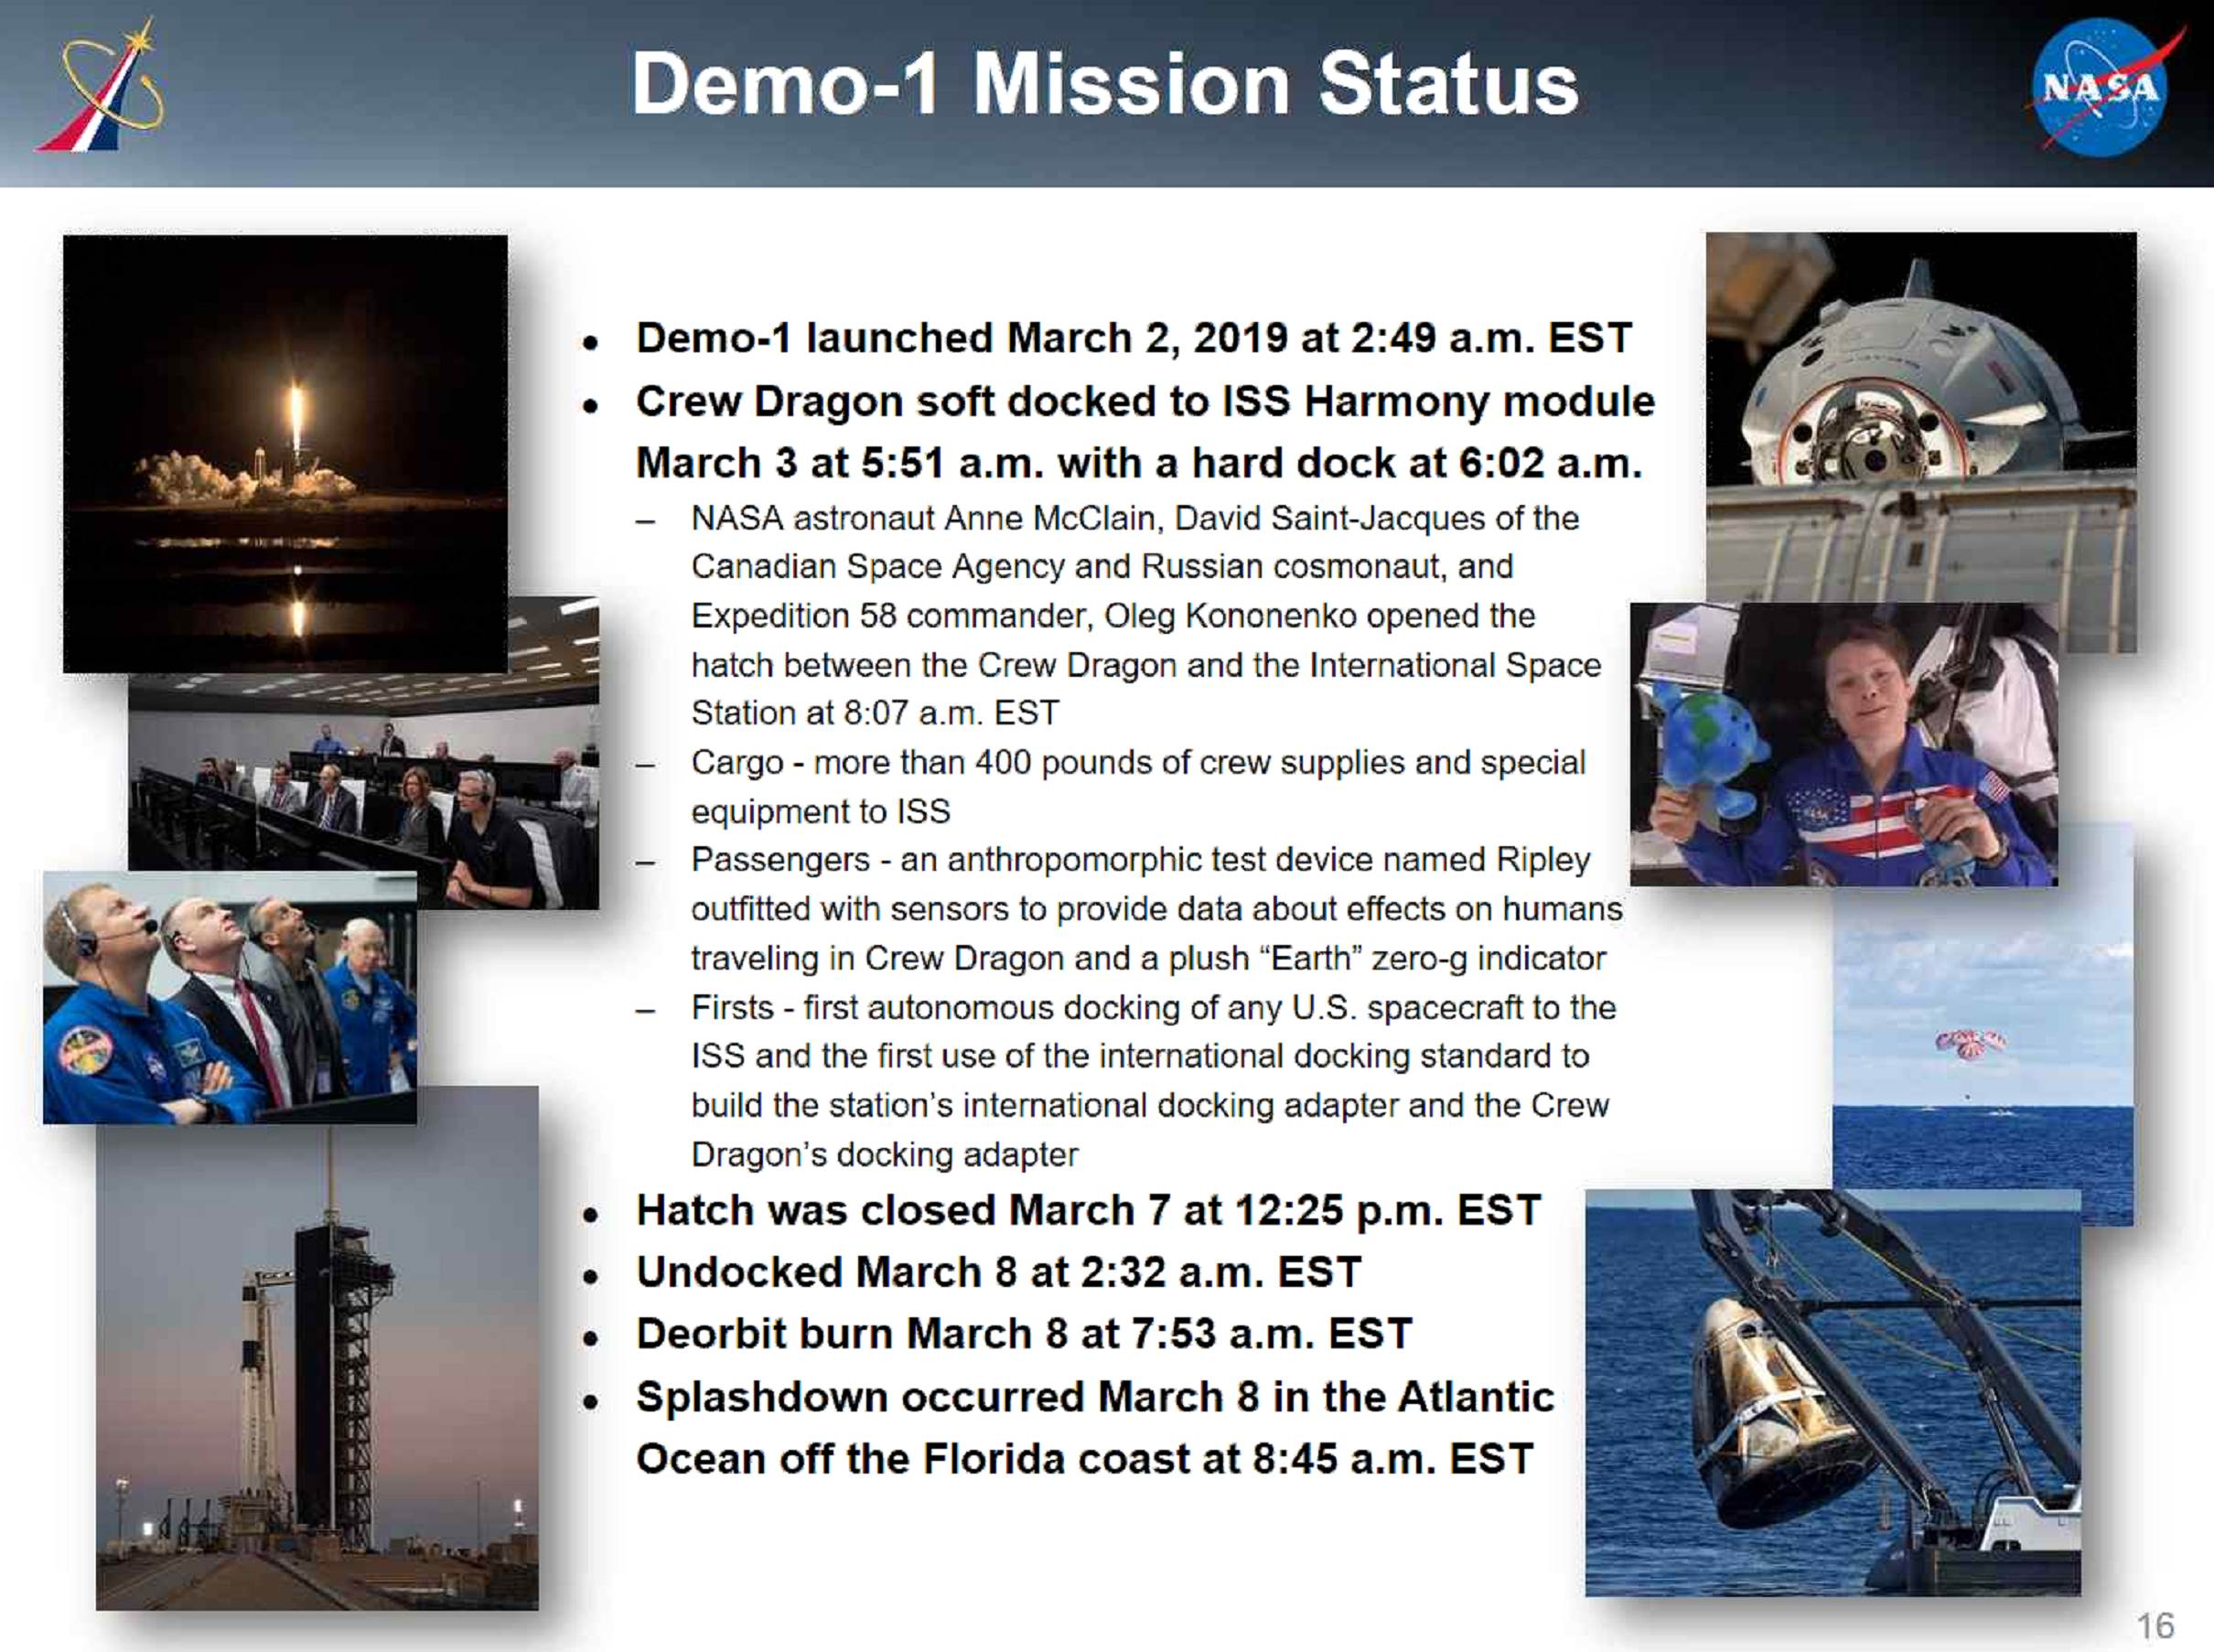 SpaceX DM-1 status Q2 2019 (NASA NAC) 1